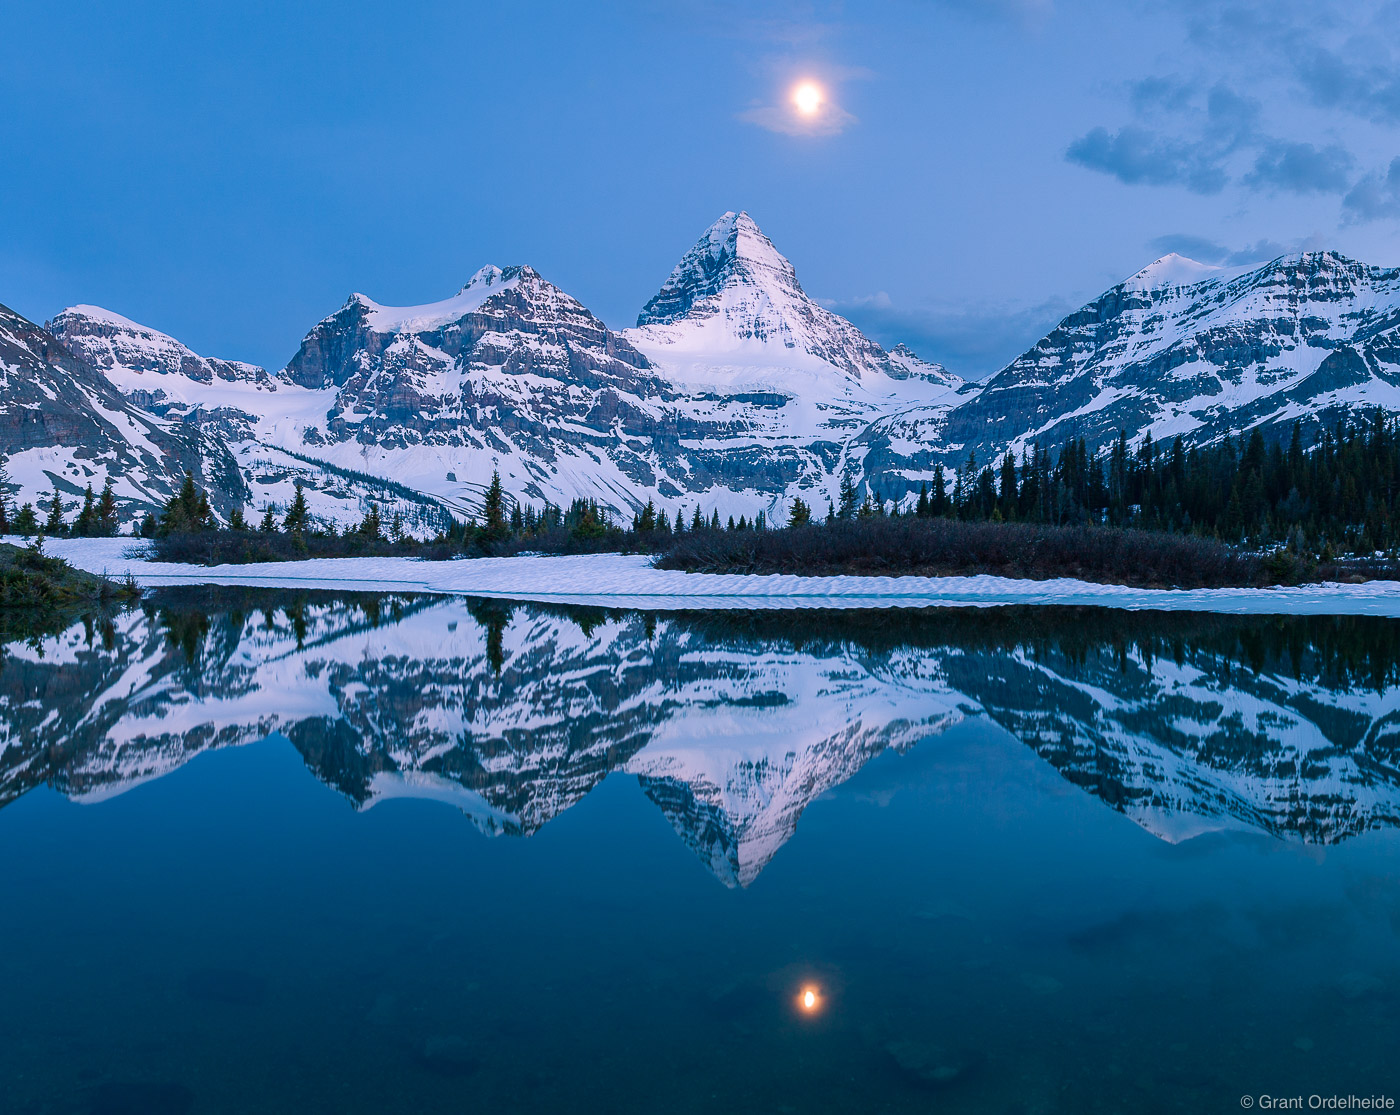 assiniboine, moon, tarn, reflection, british columbia, provincial park, photo